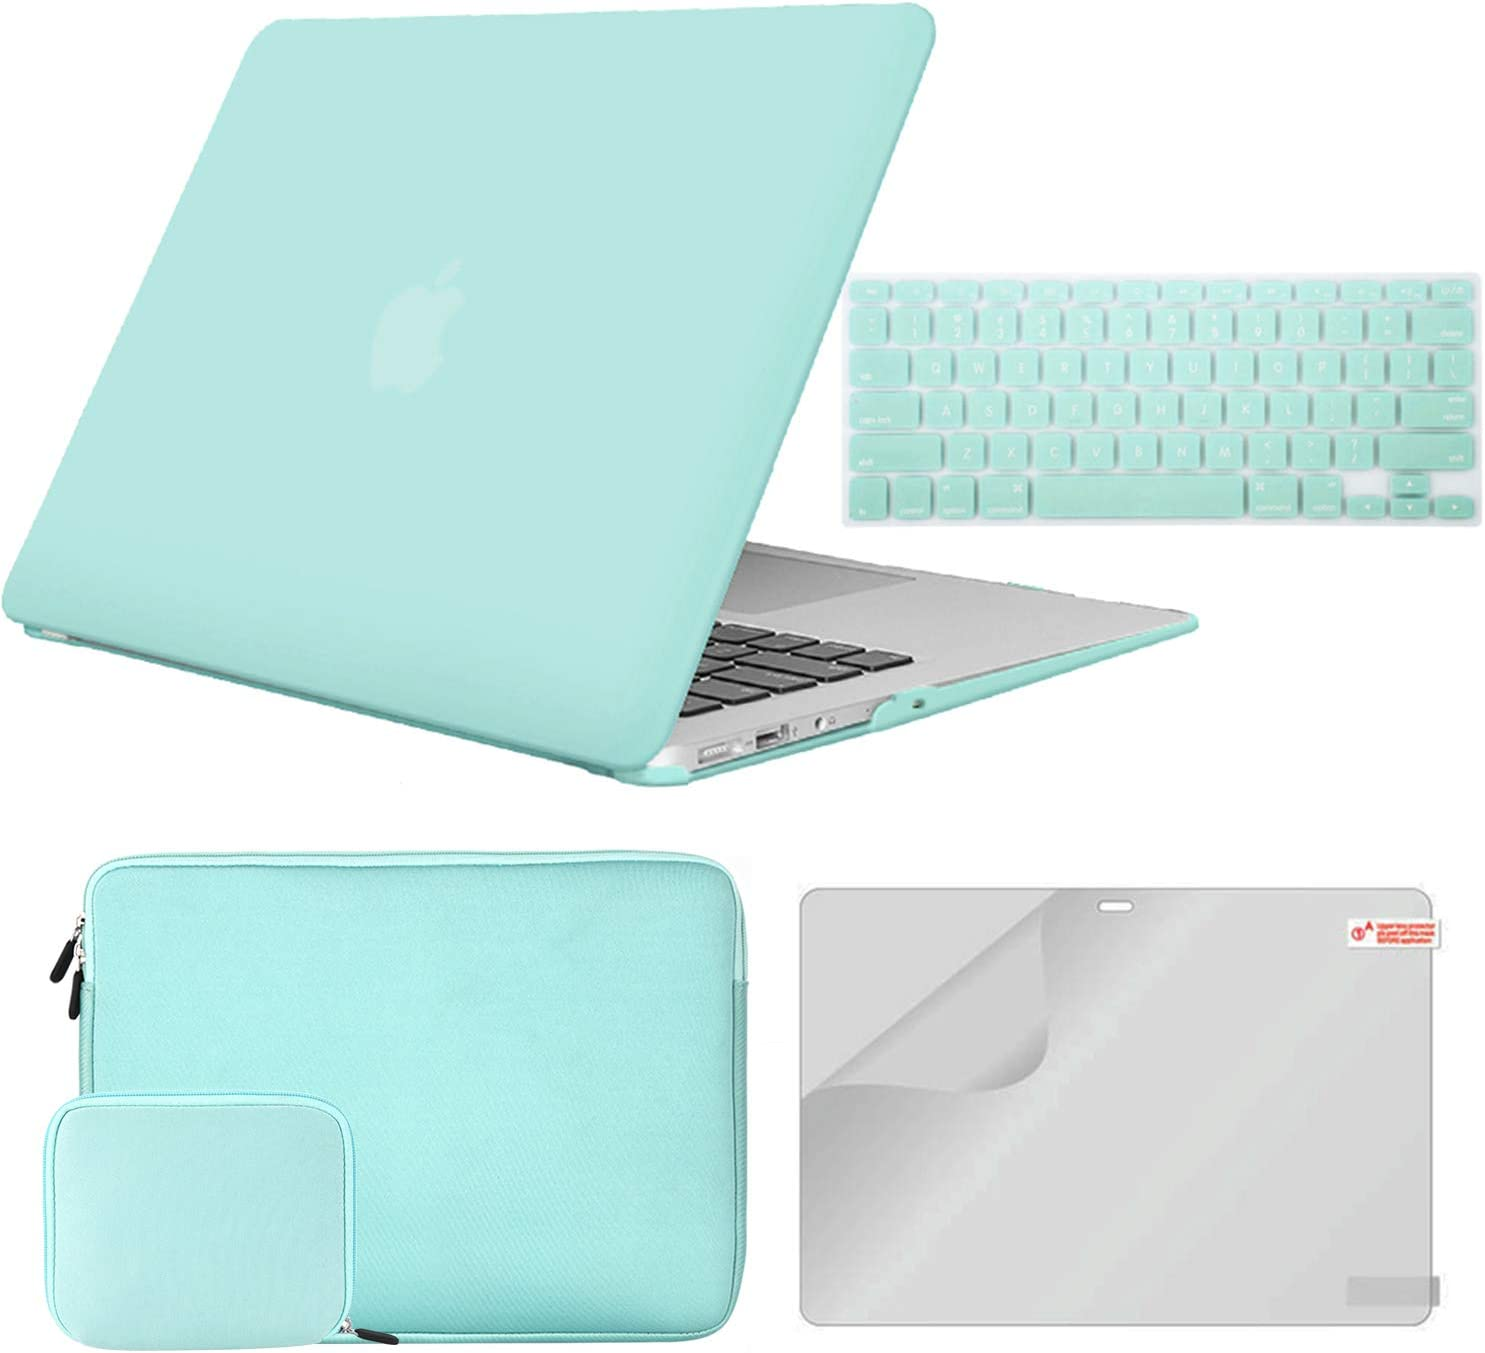 iCasso MacBook Air 13 Inch Case A1369/A1466 Bundle 4 in 1, Plastic Hard Shell Case, Sleeve, Screen Protector, Keyboard Cover and Small Pouch Compatible 2010-2017 Release MacBook Air 13'' - Mint Green